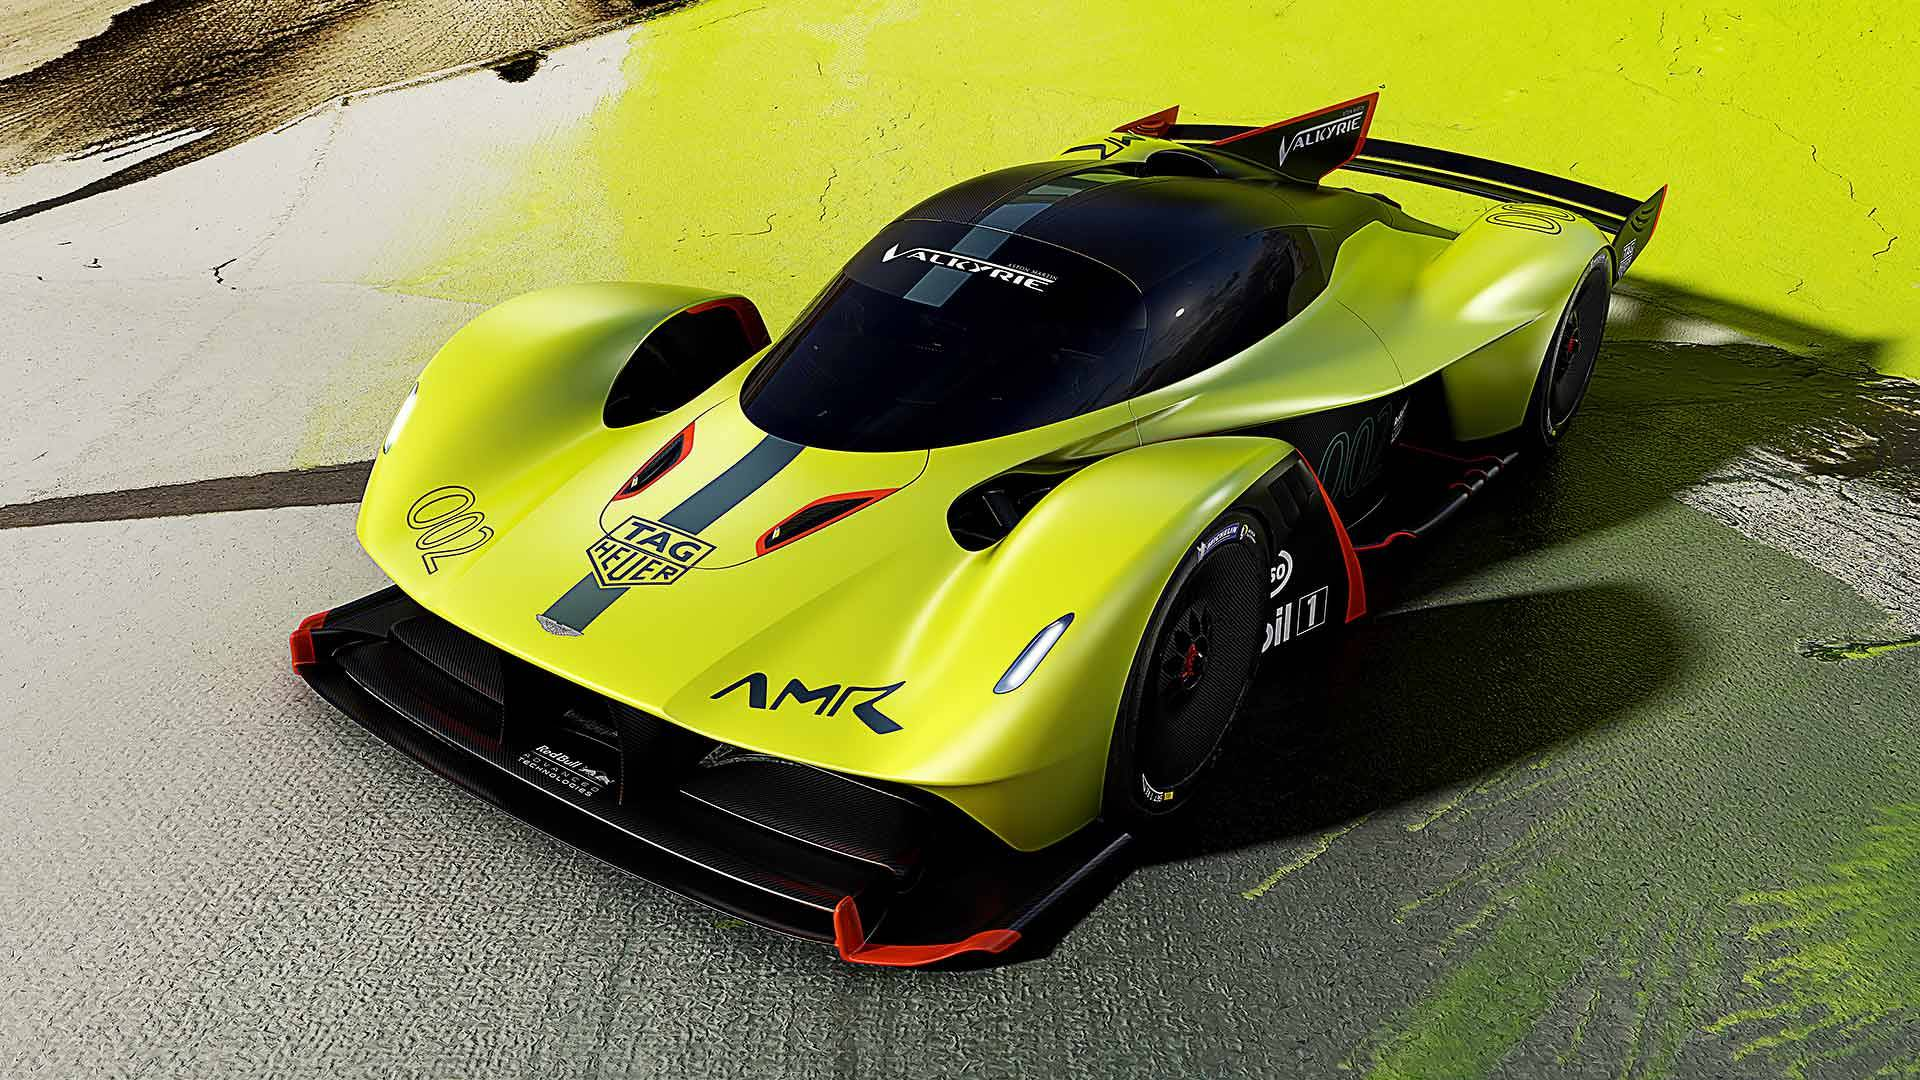 aston martin valkyrie amr pro's stats could be underestimated